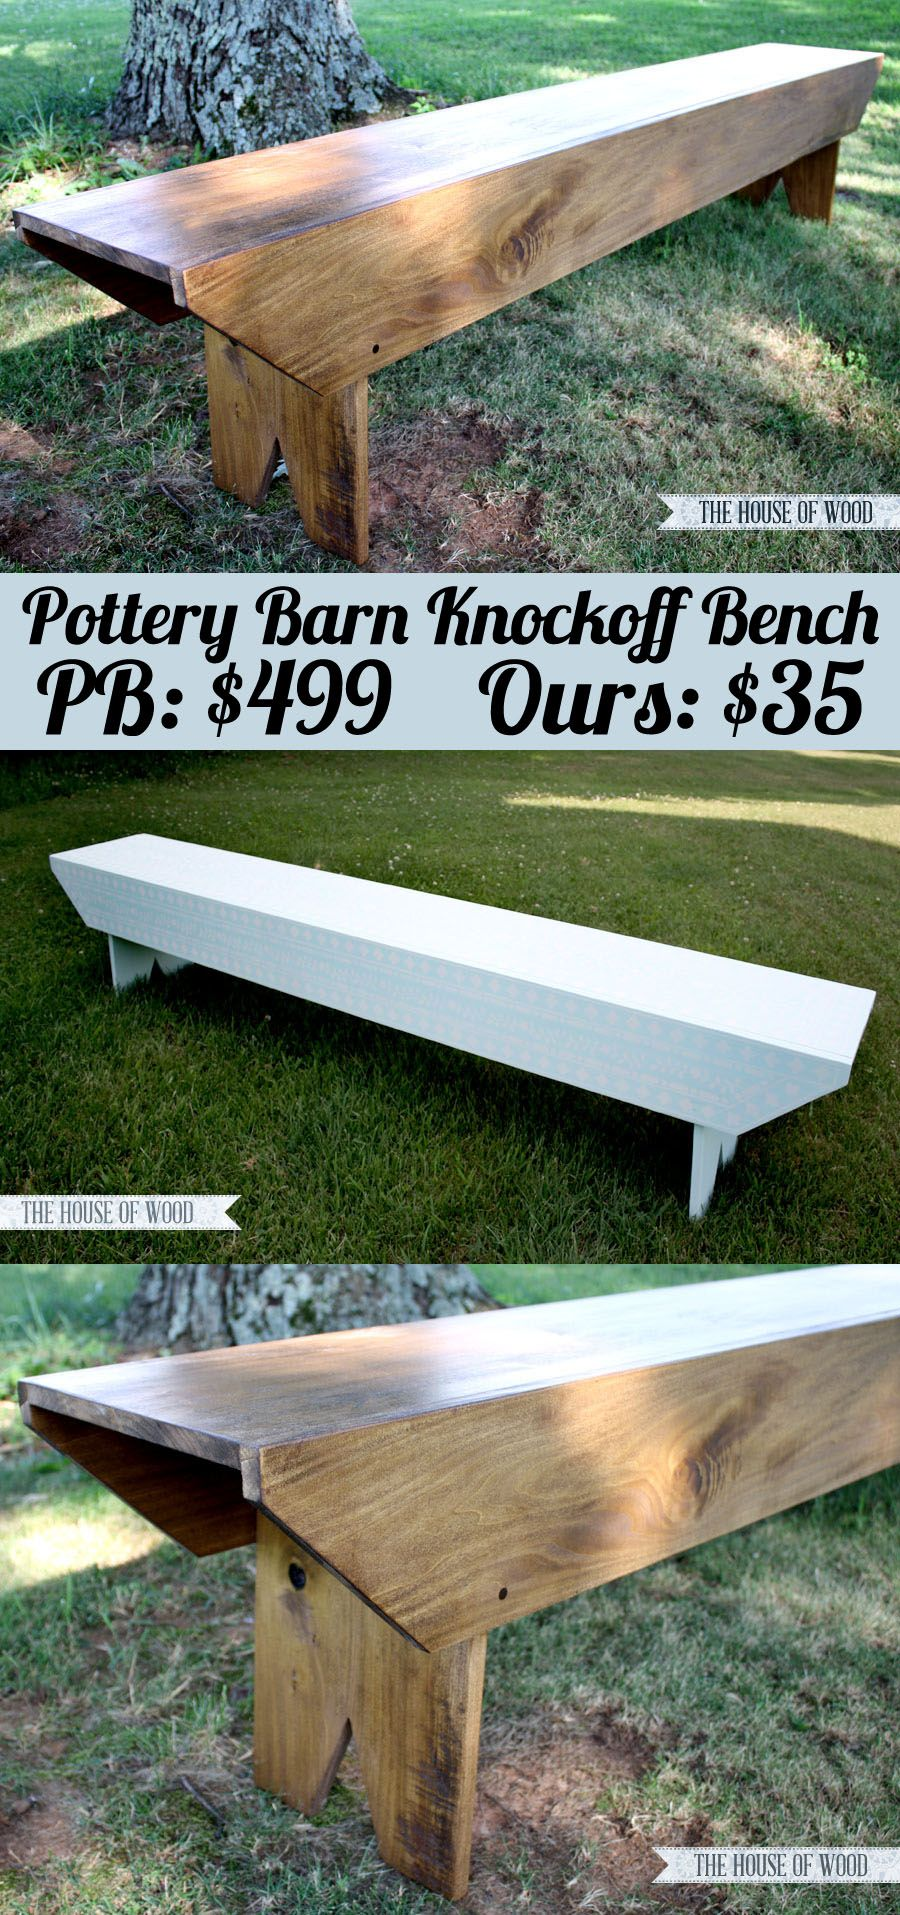 Plans and pictorial for DIY Pottery Barn-Inspired Bench - need just ...